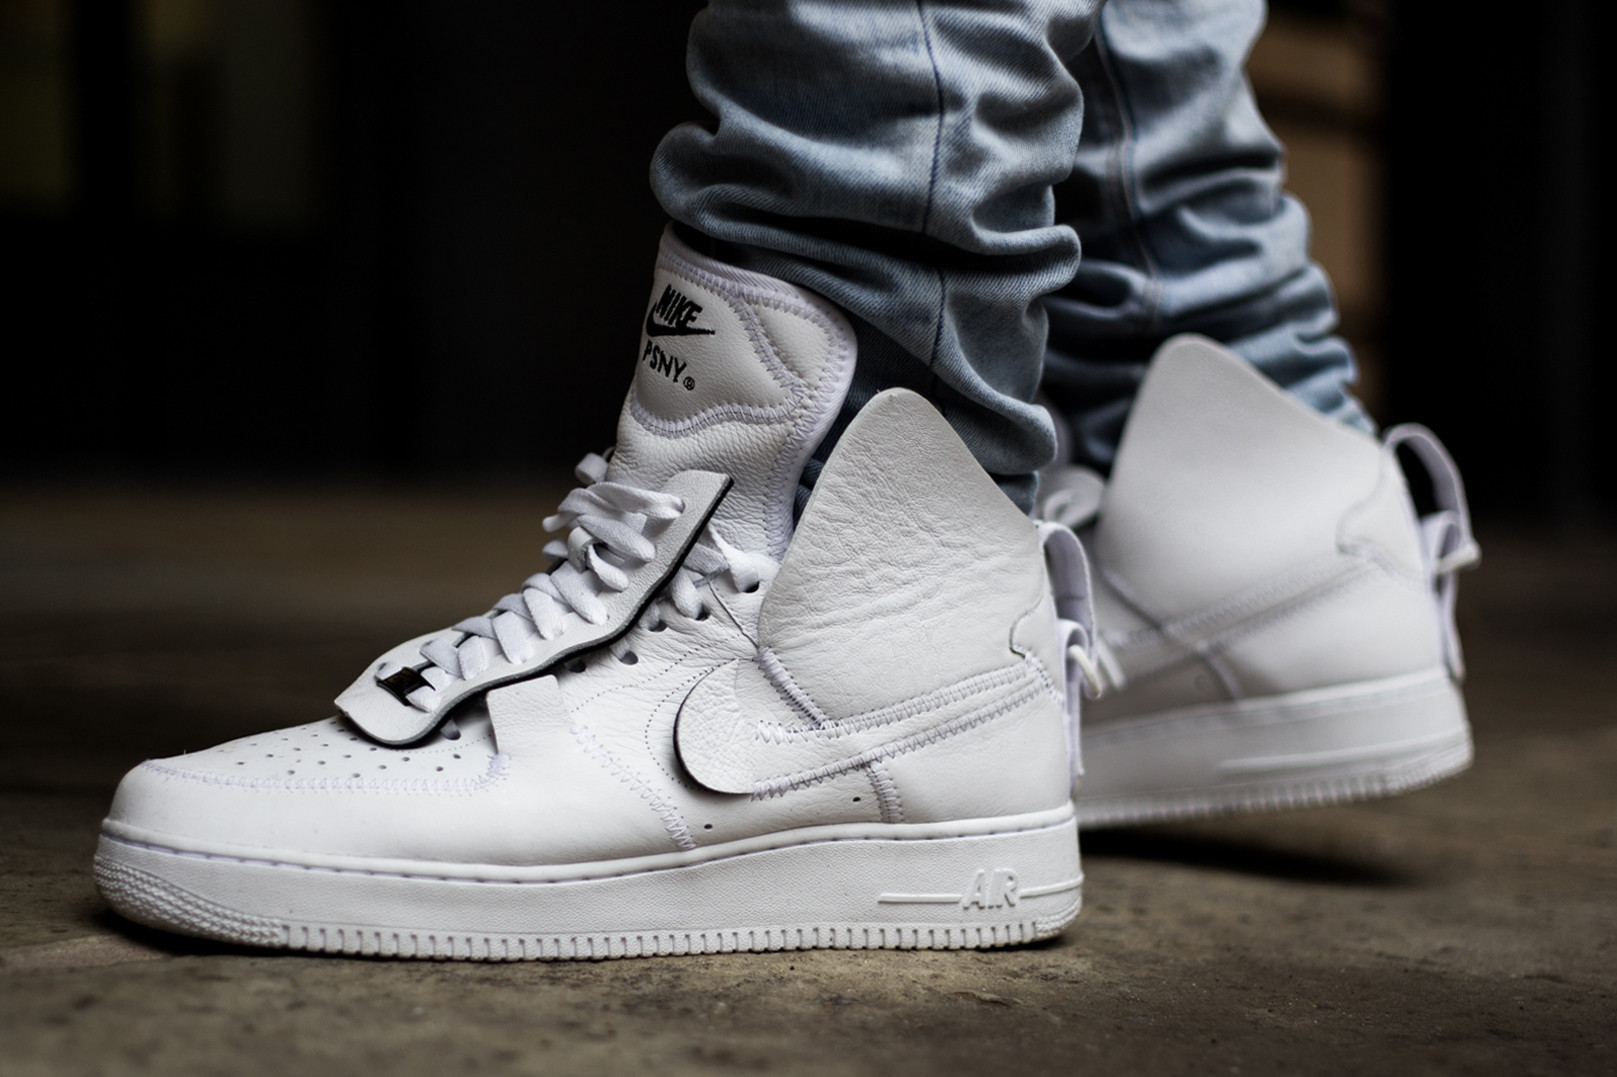 PSNY x Nike Air Force 1 High Potential